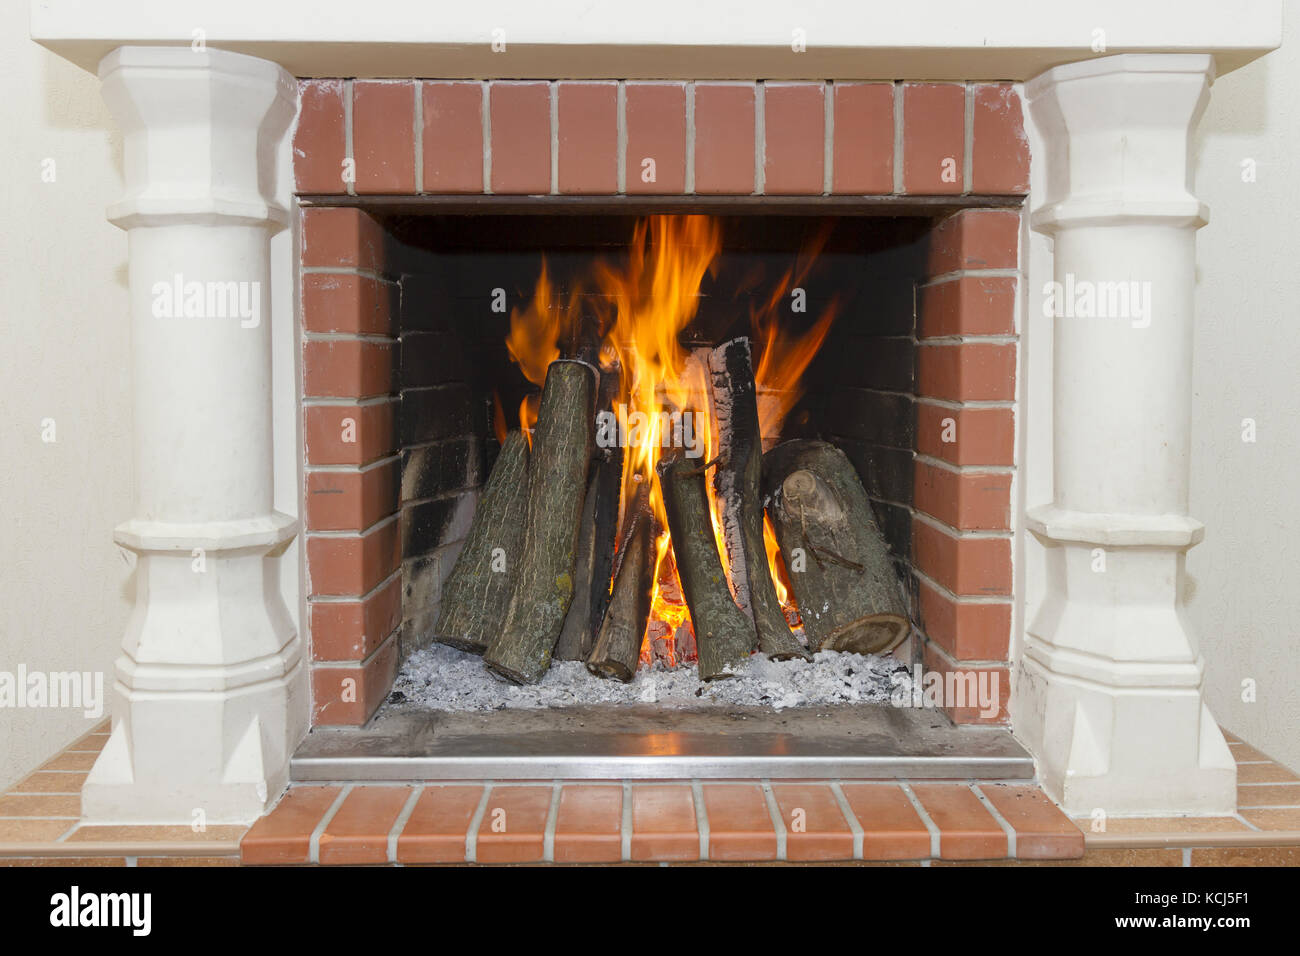 White fireplace with a burning fire - Stock Image